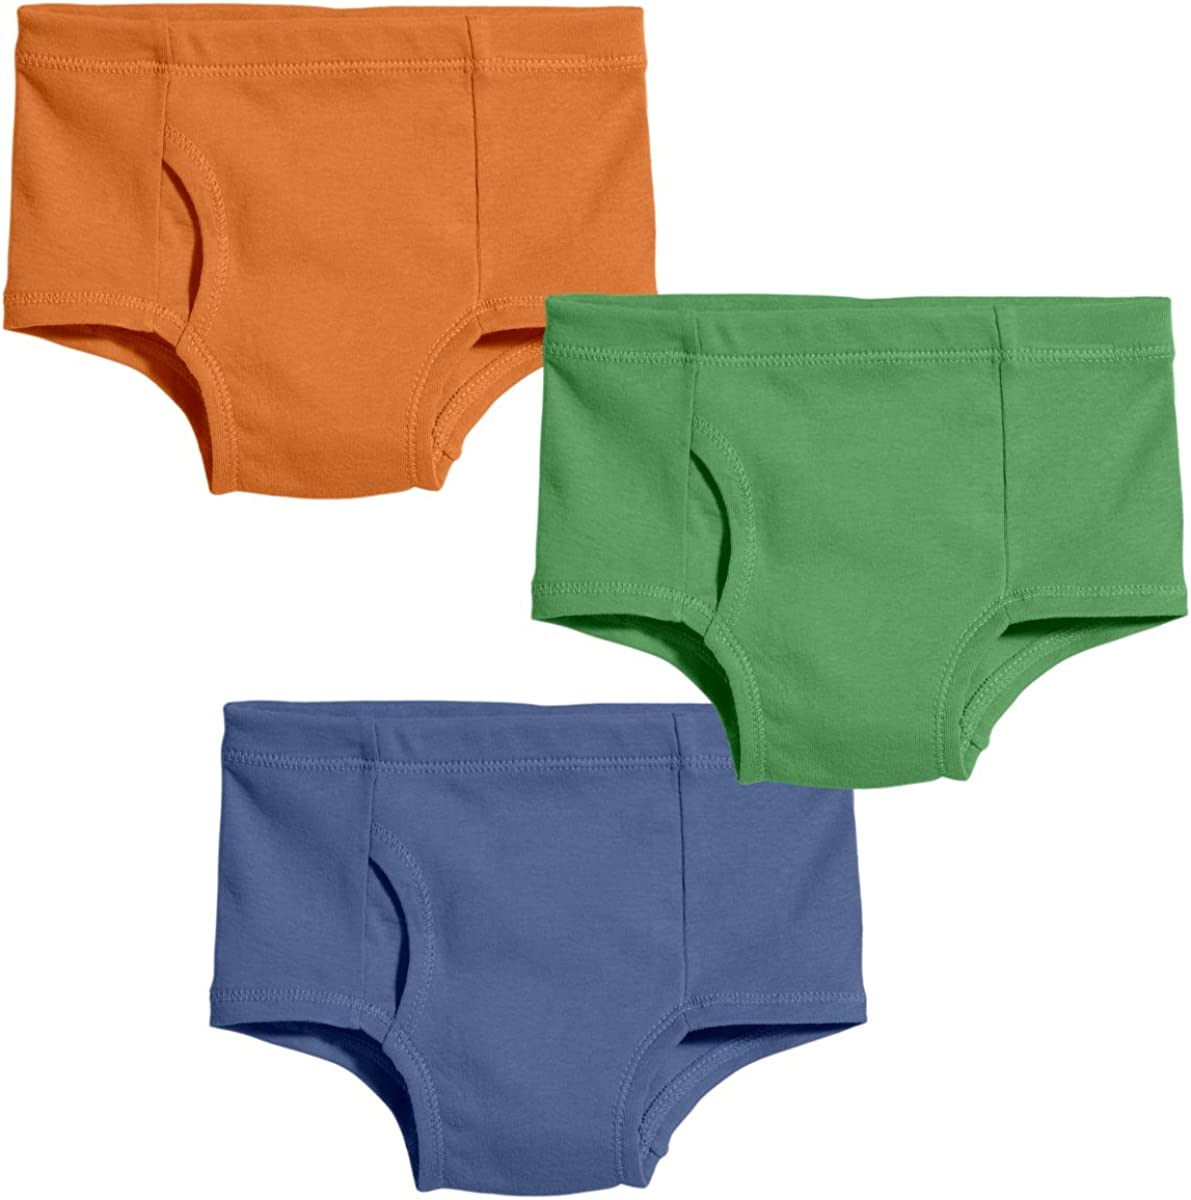 City Threads Boys' 100% Certified Free shipping anywhere in the Department store nation Briefs Organic Underwea Cotton